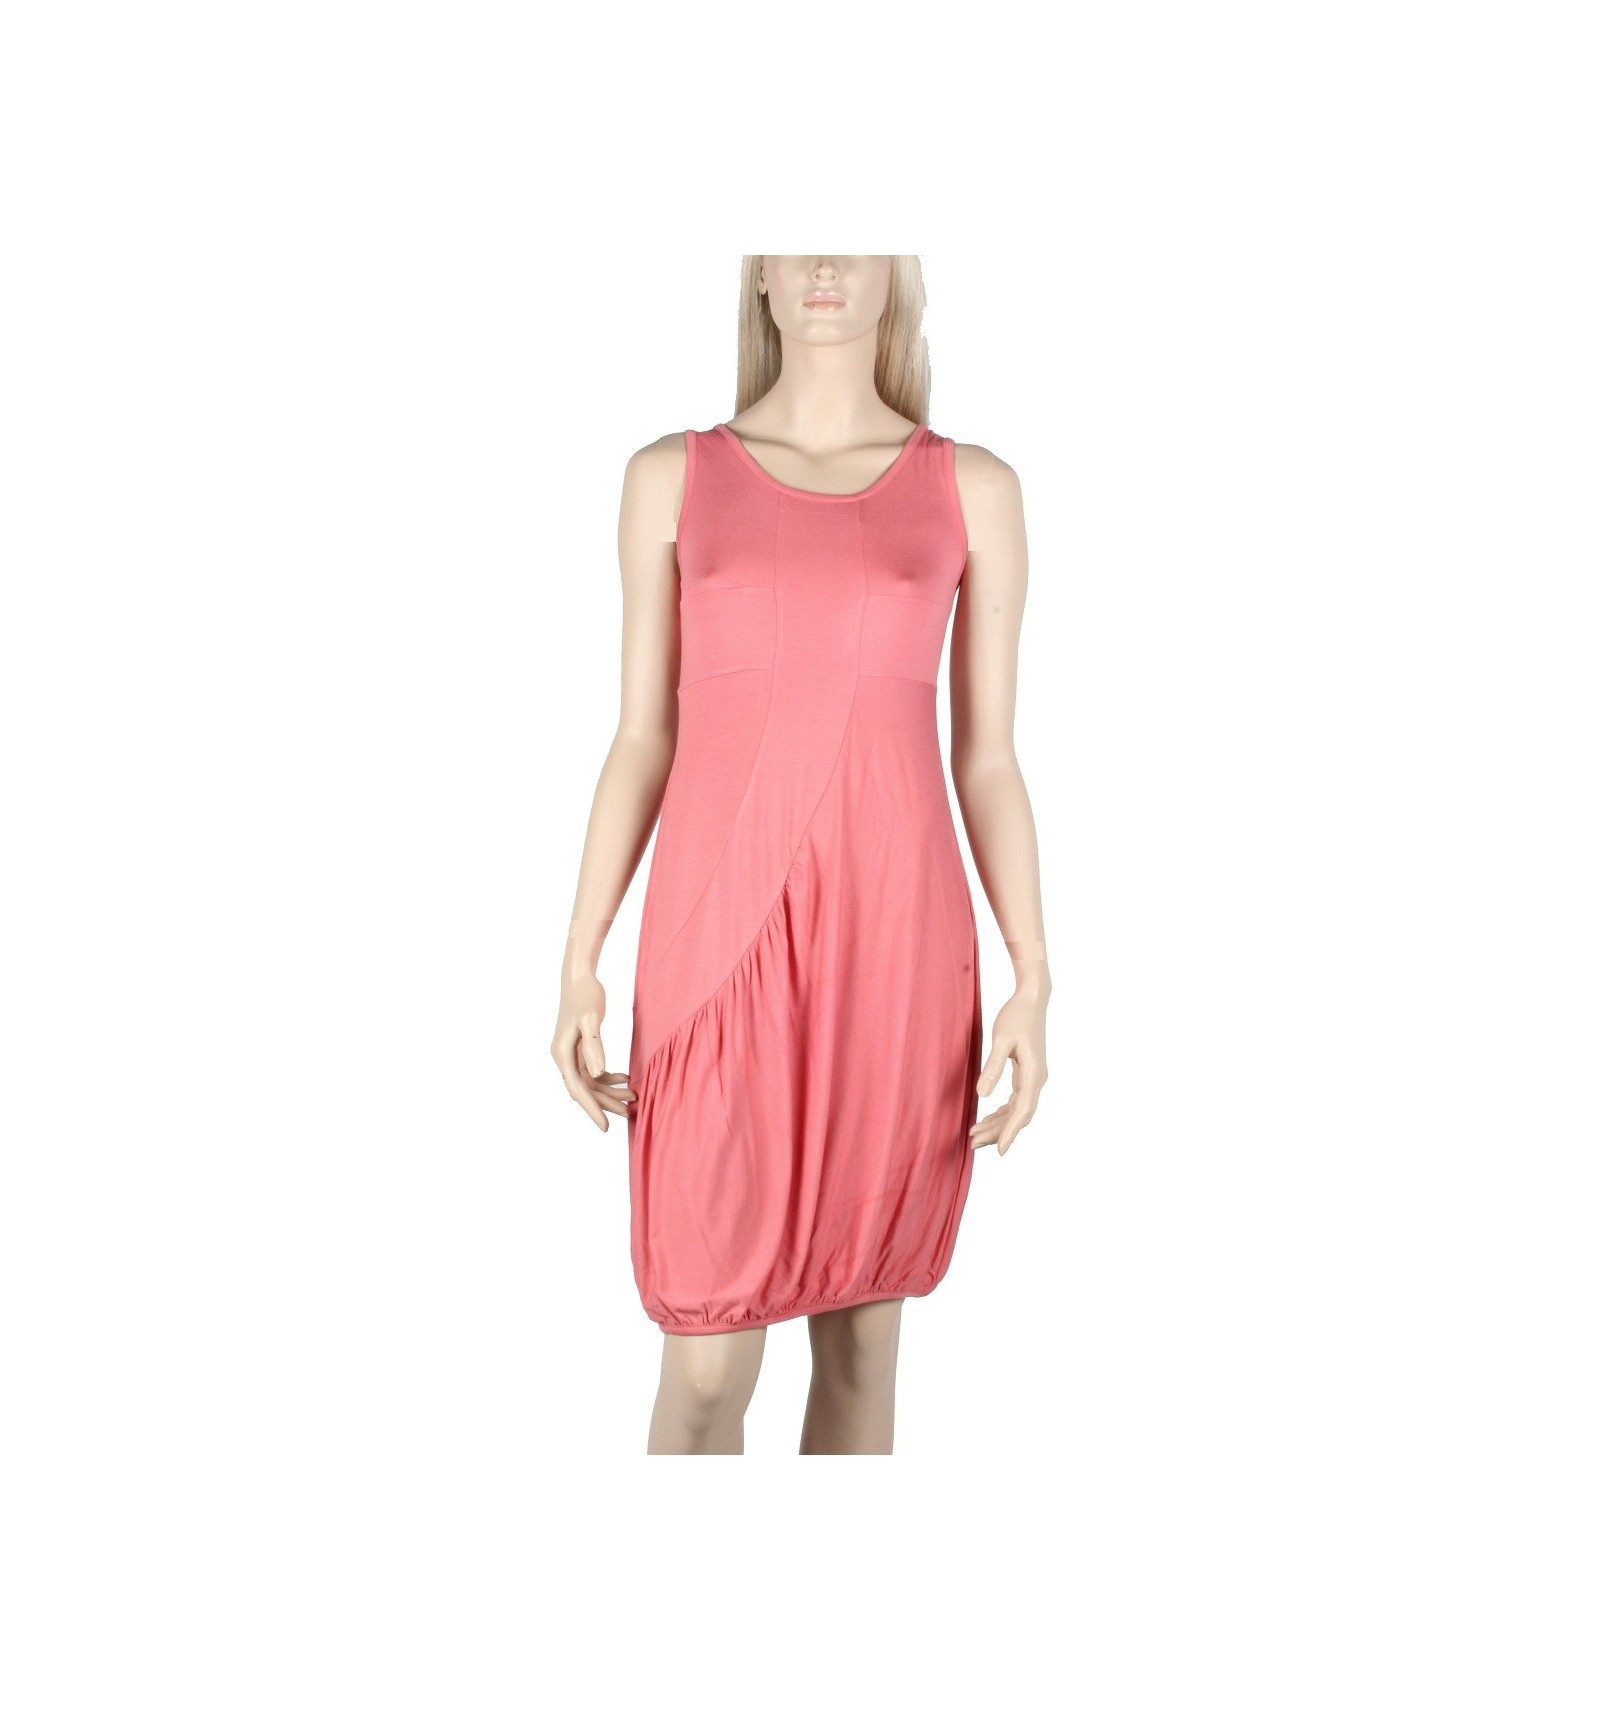 Maloka woman coral colored dress on sale on Mode-Lin